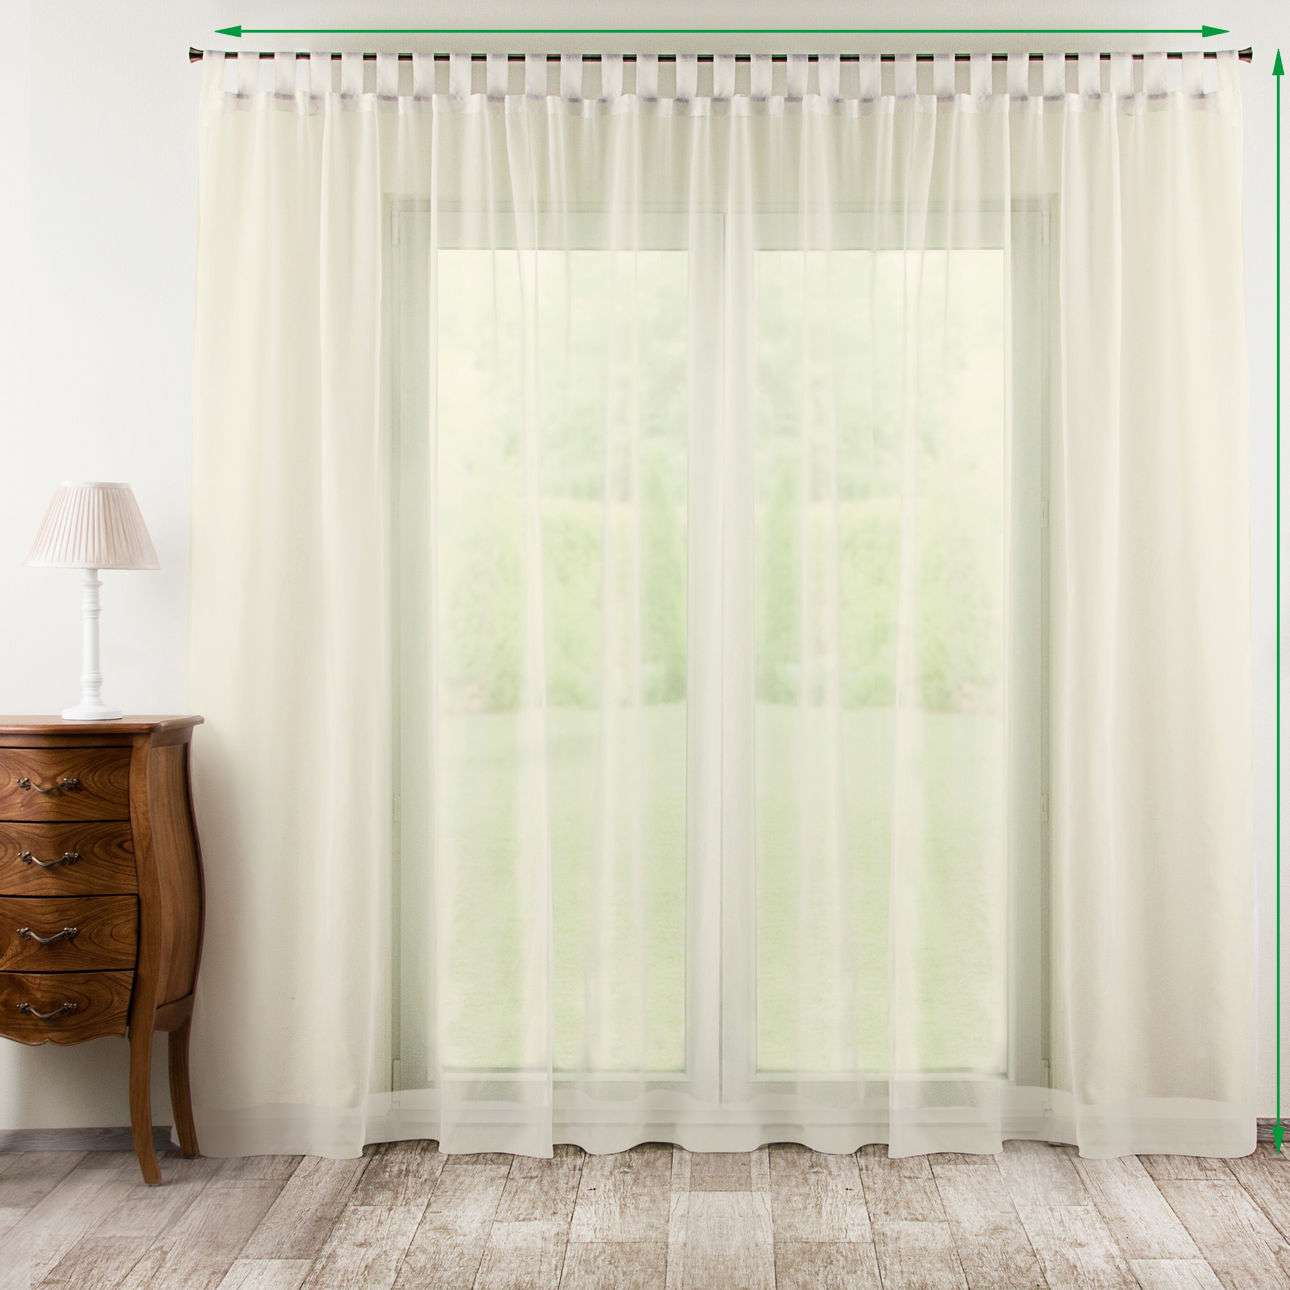 How To Measure Fabric For Tab Top Curtains